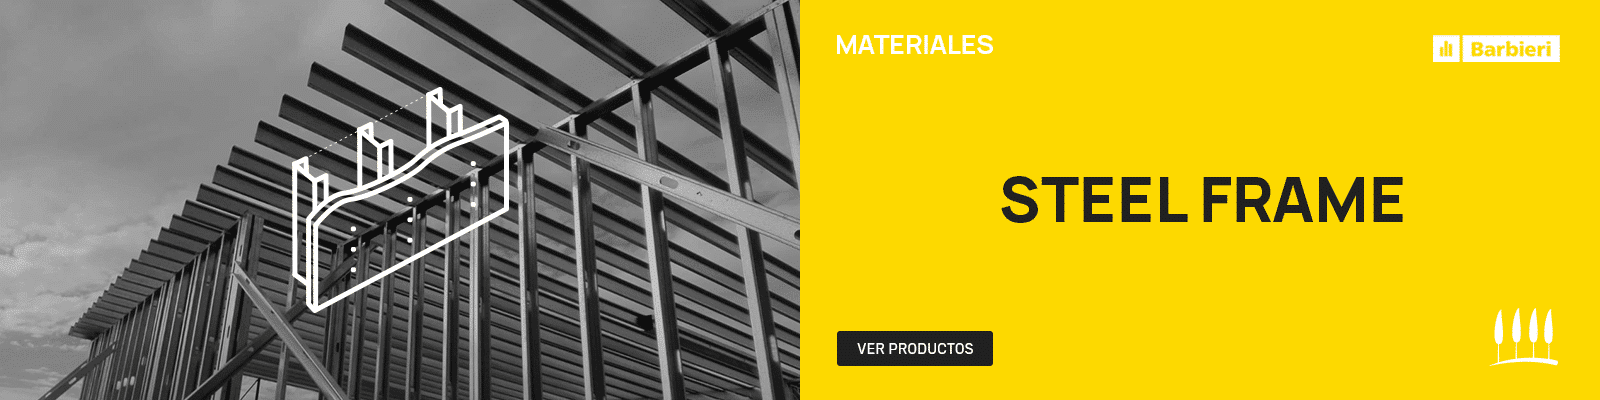 Productos Steel Frame en La Foresta